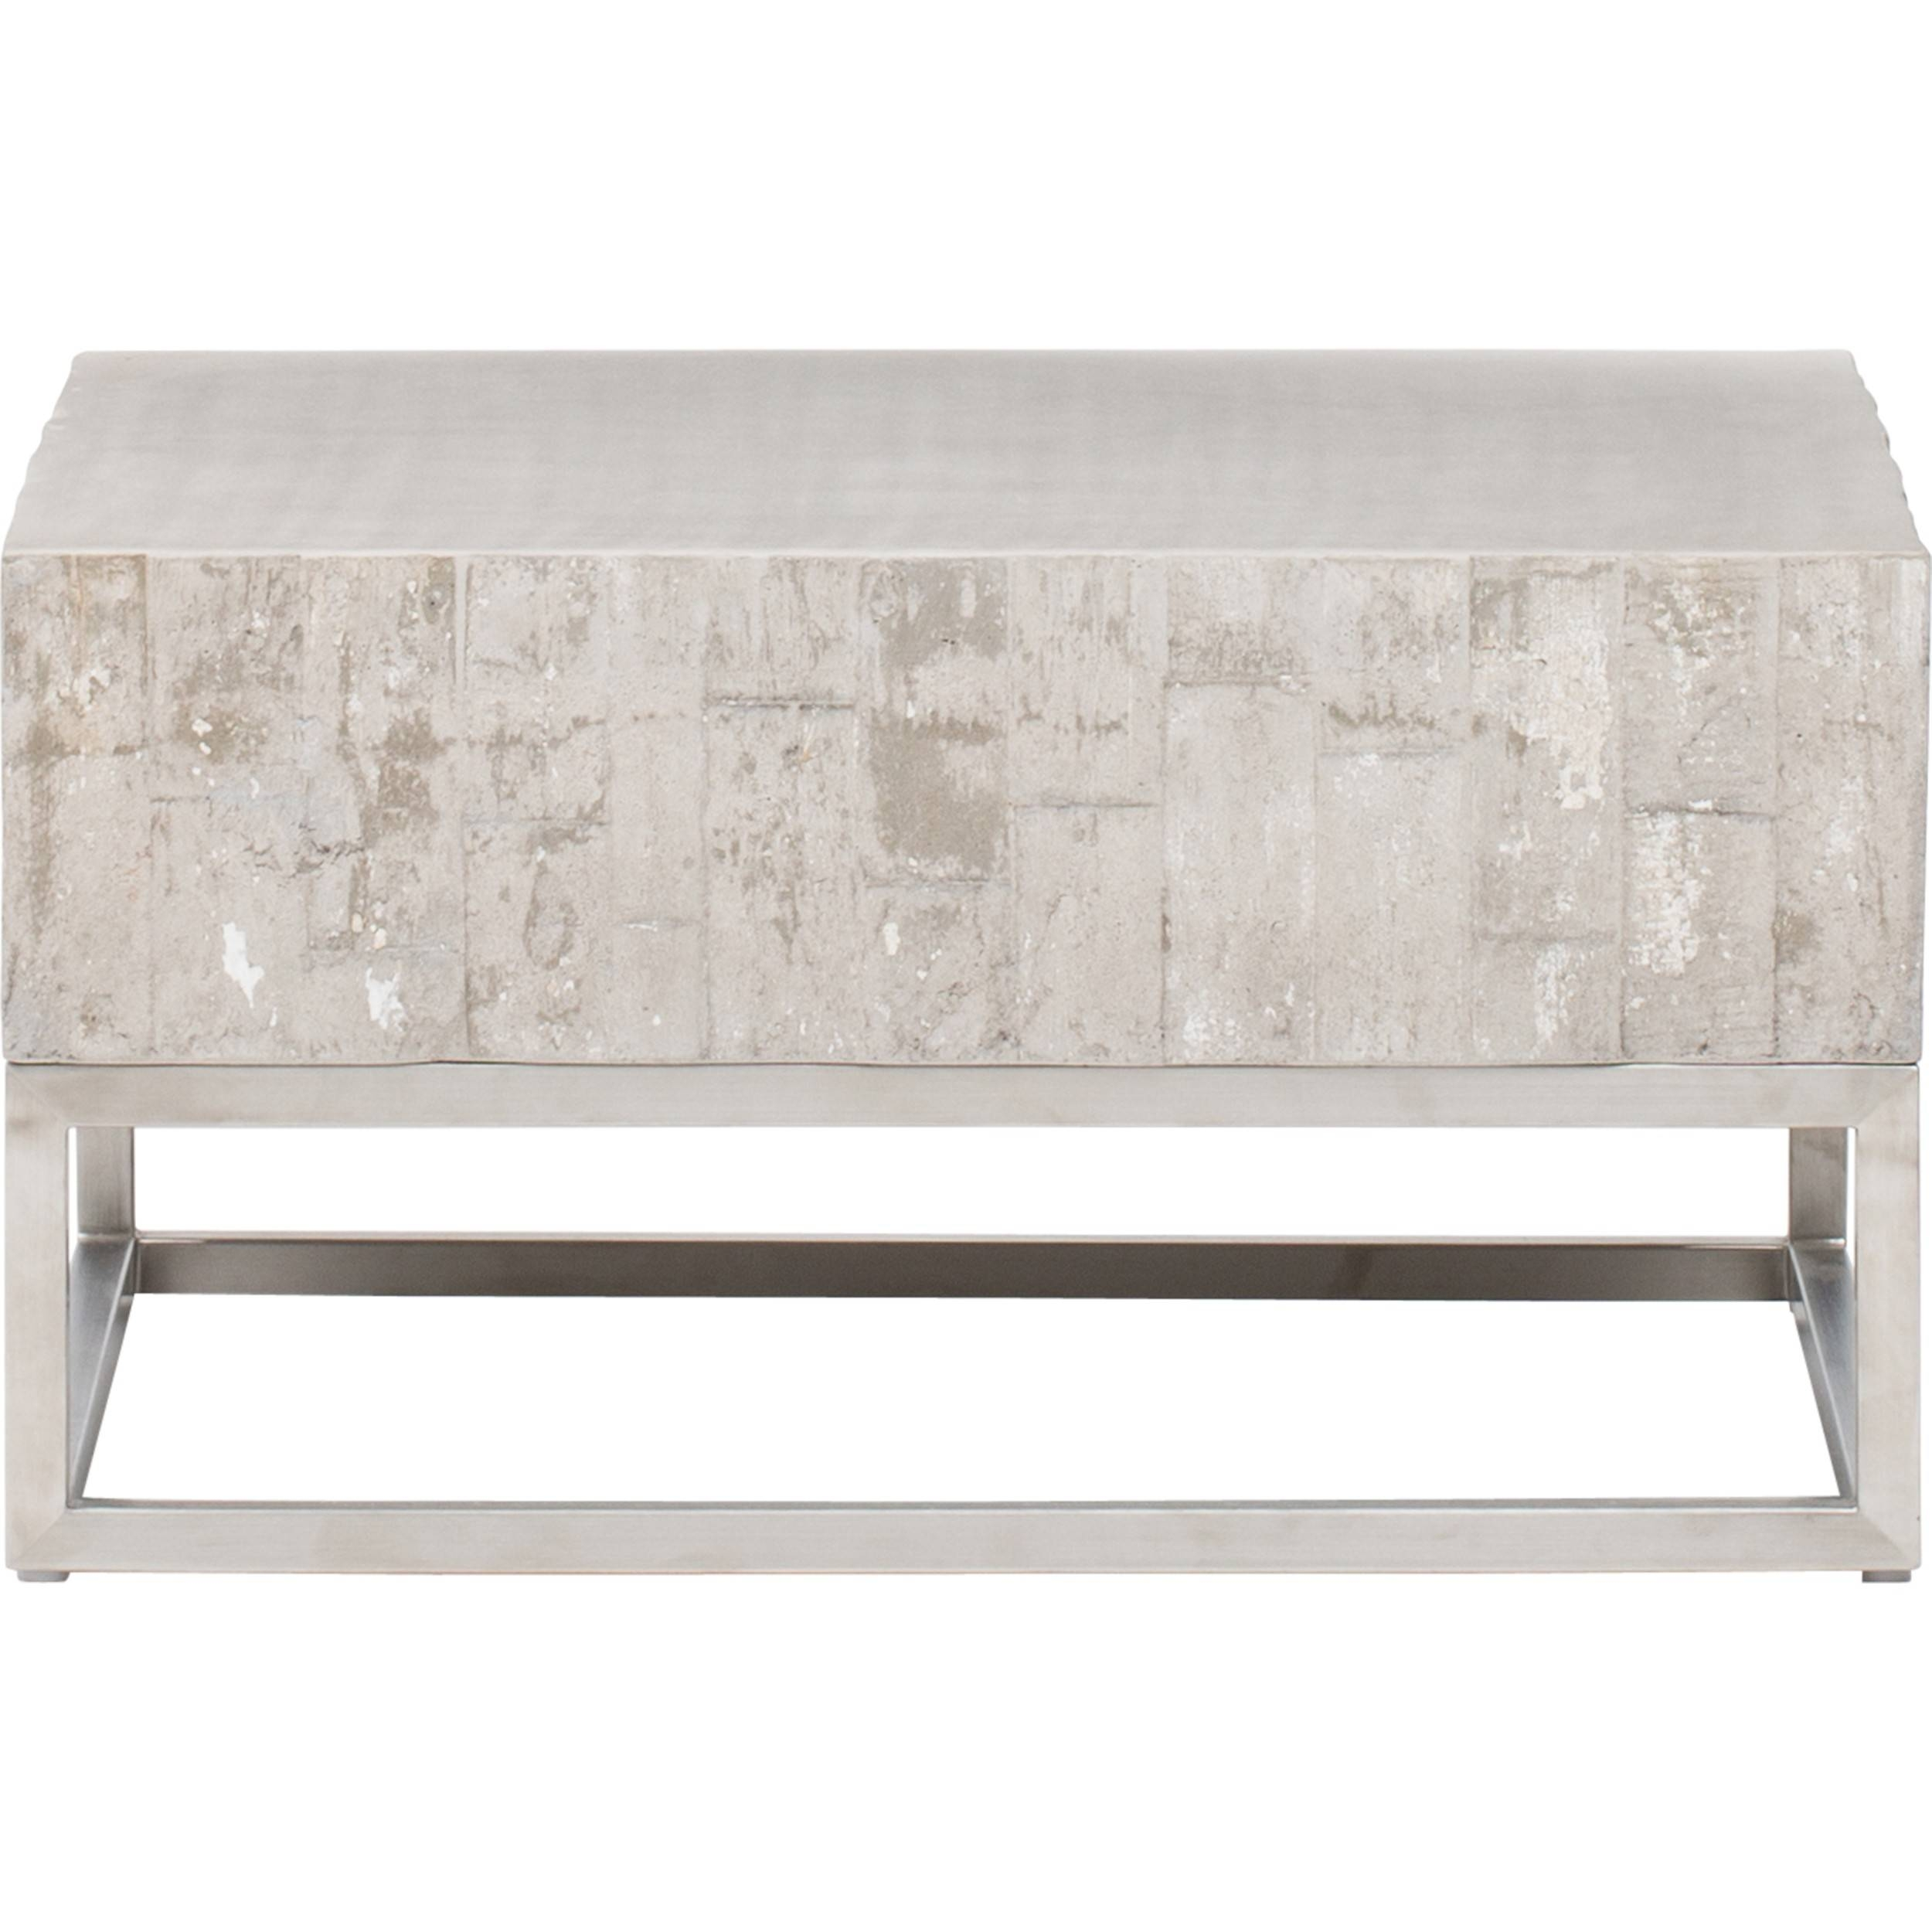 Concrete And Chrome Coffee Table – Coffee Tables – Accent Tables With Chrome Coffee Tables (View 9 of 30)